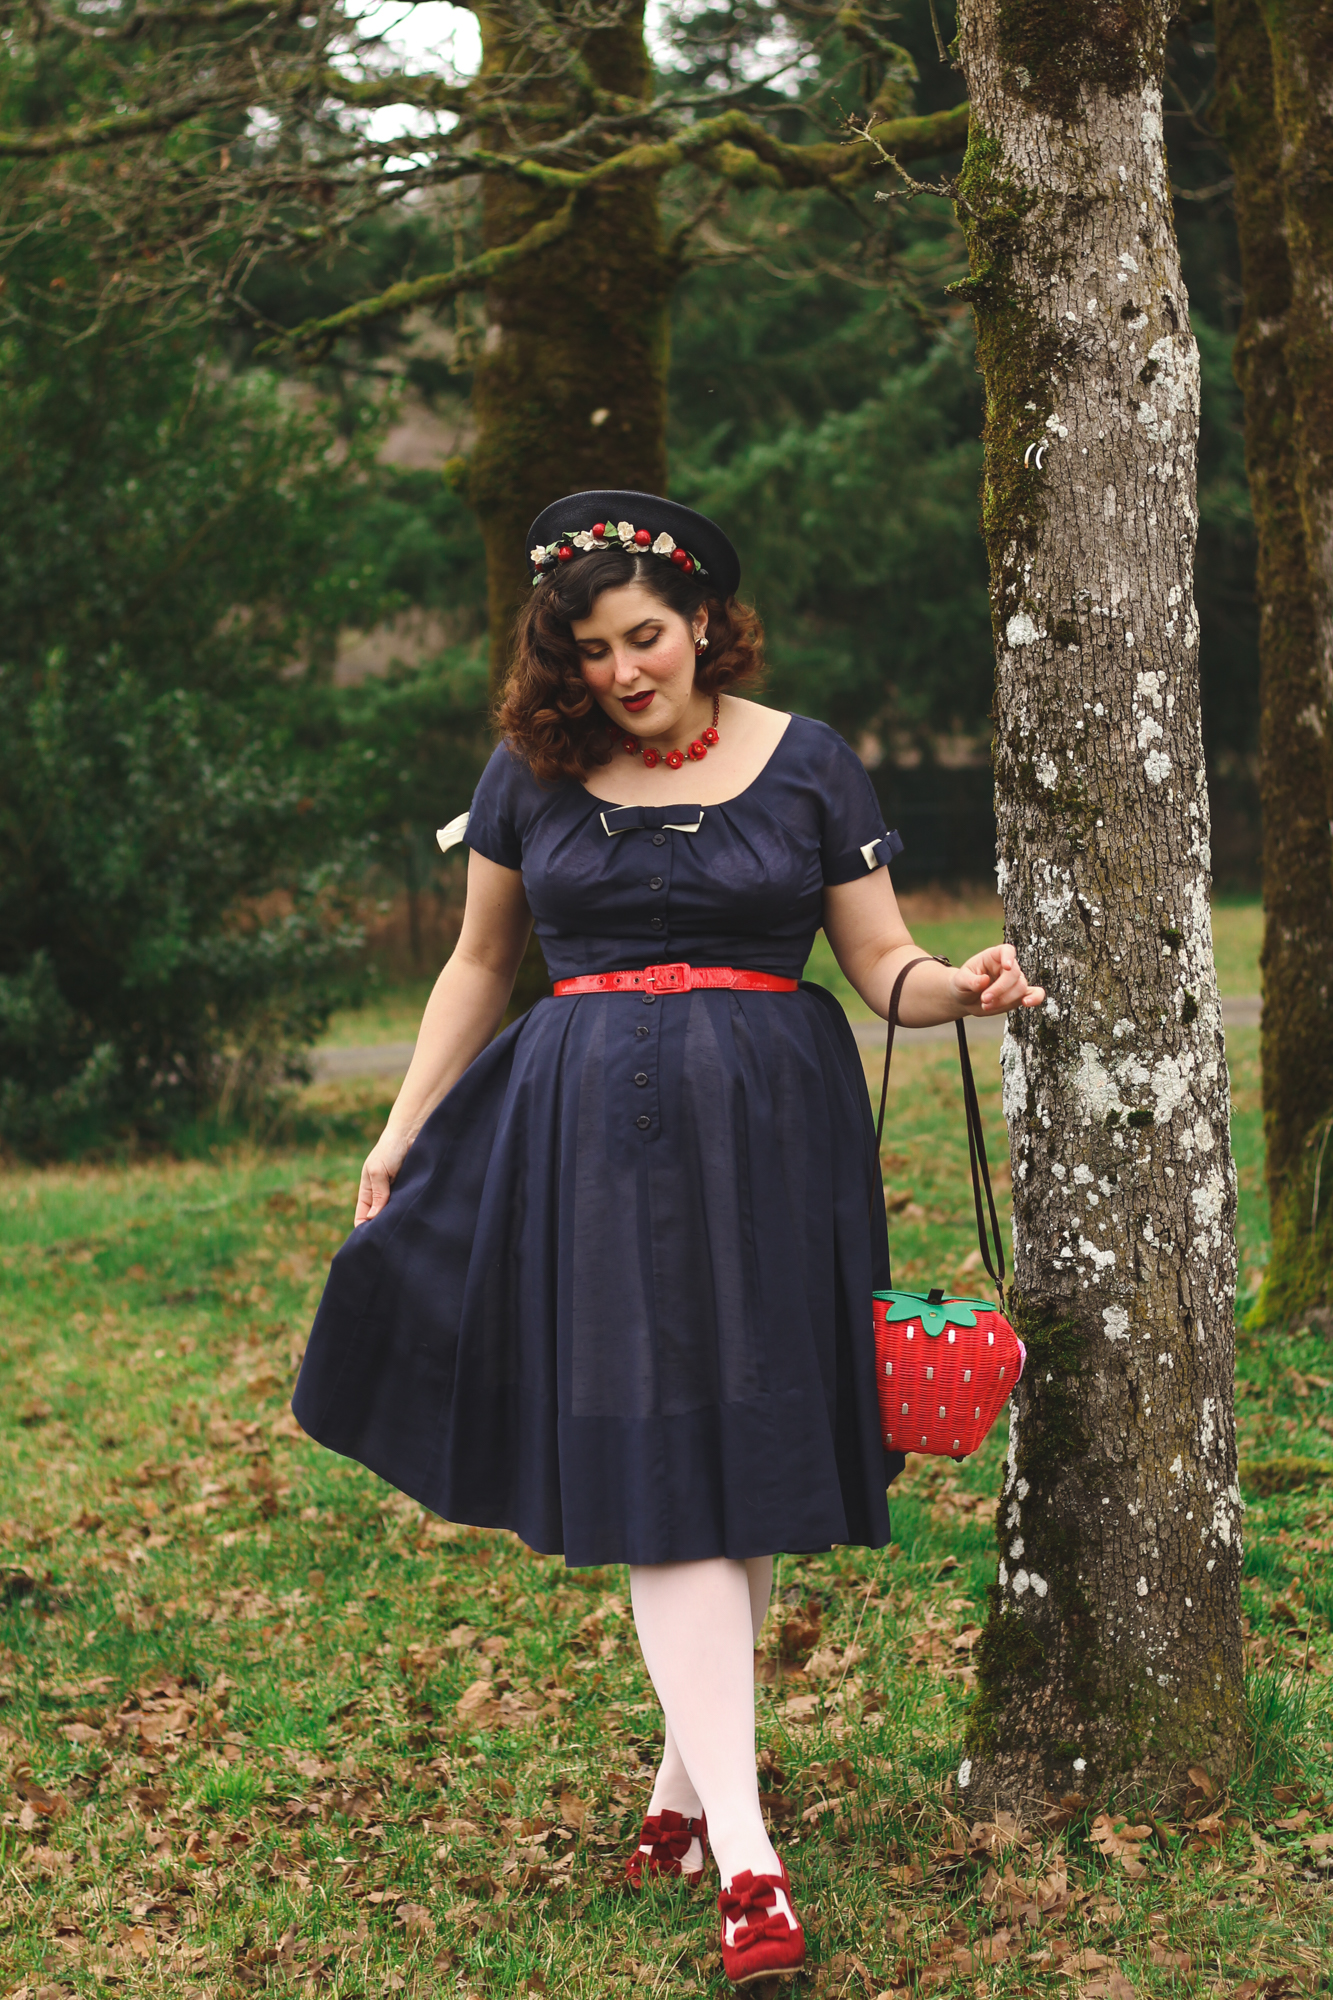 Vintage Snow White outfit